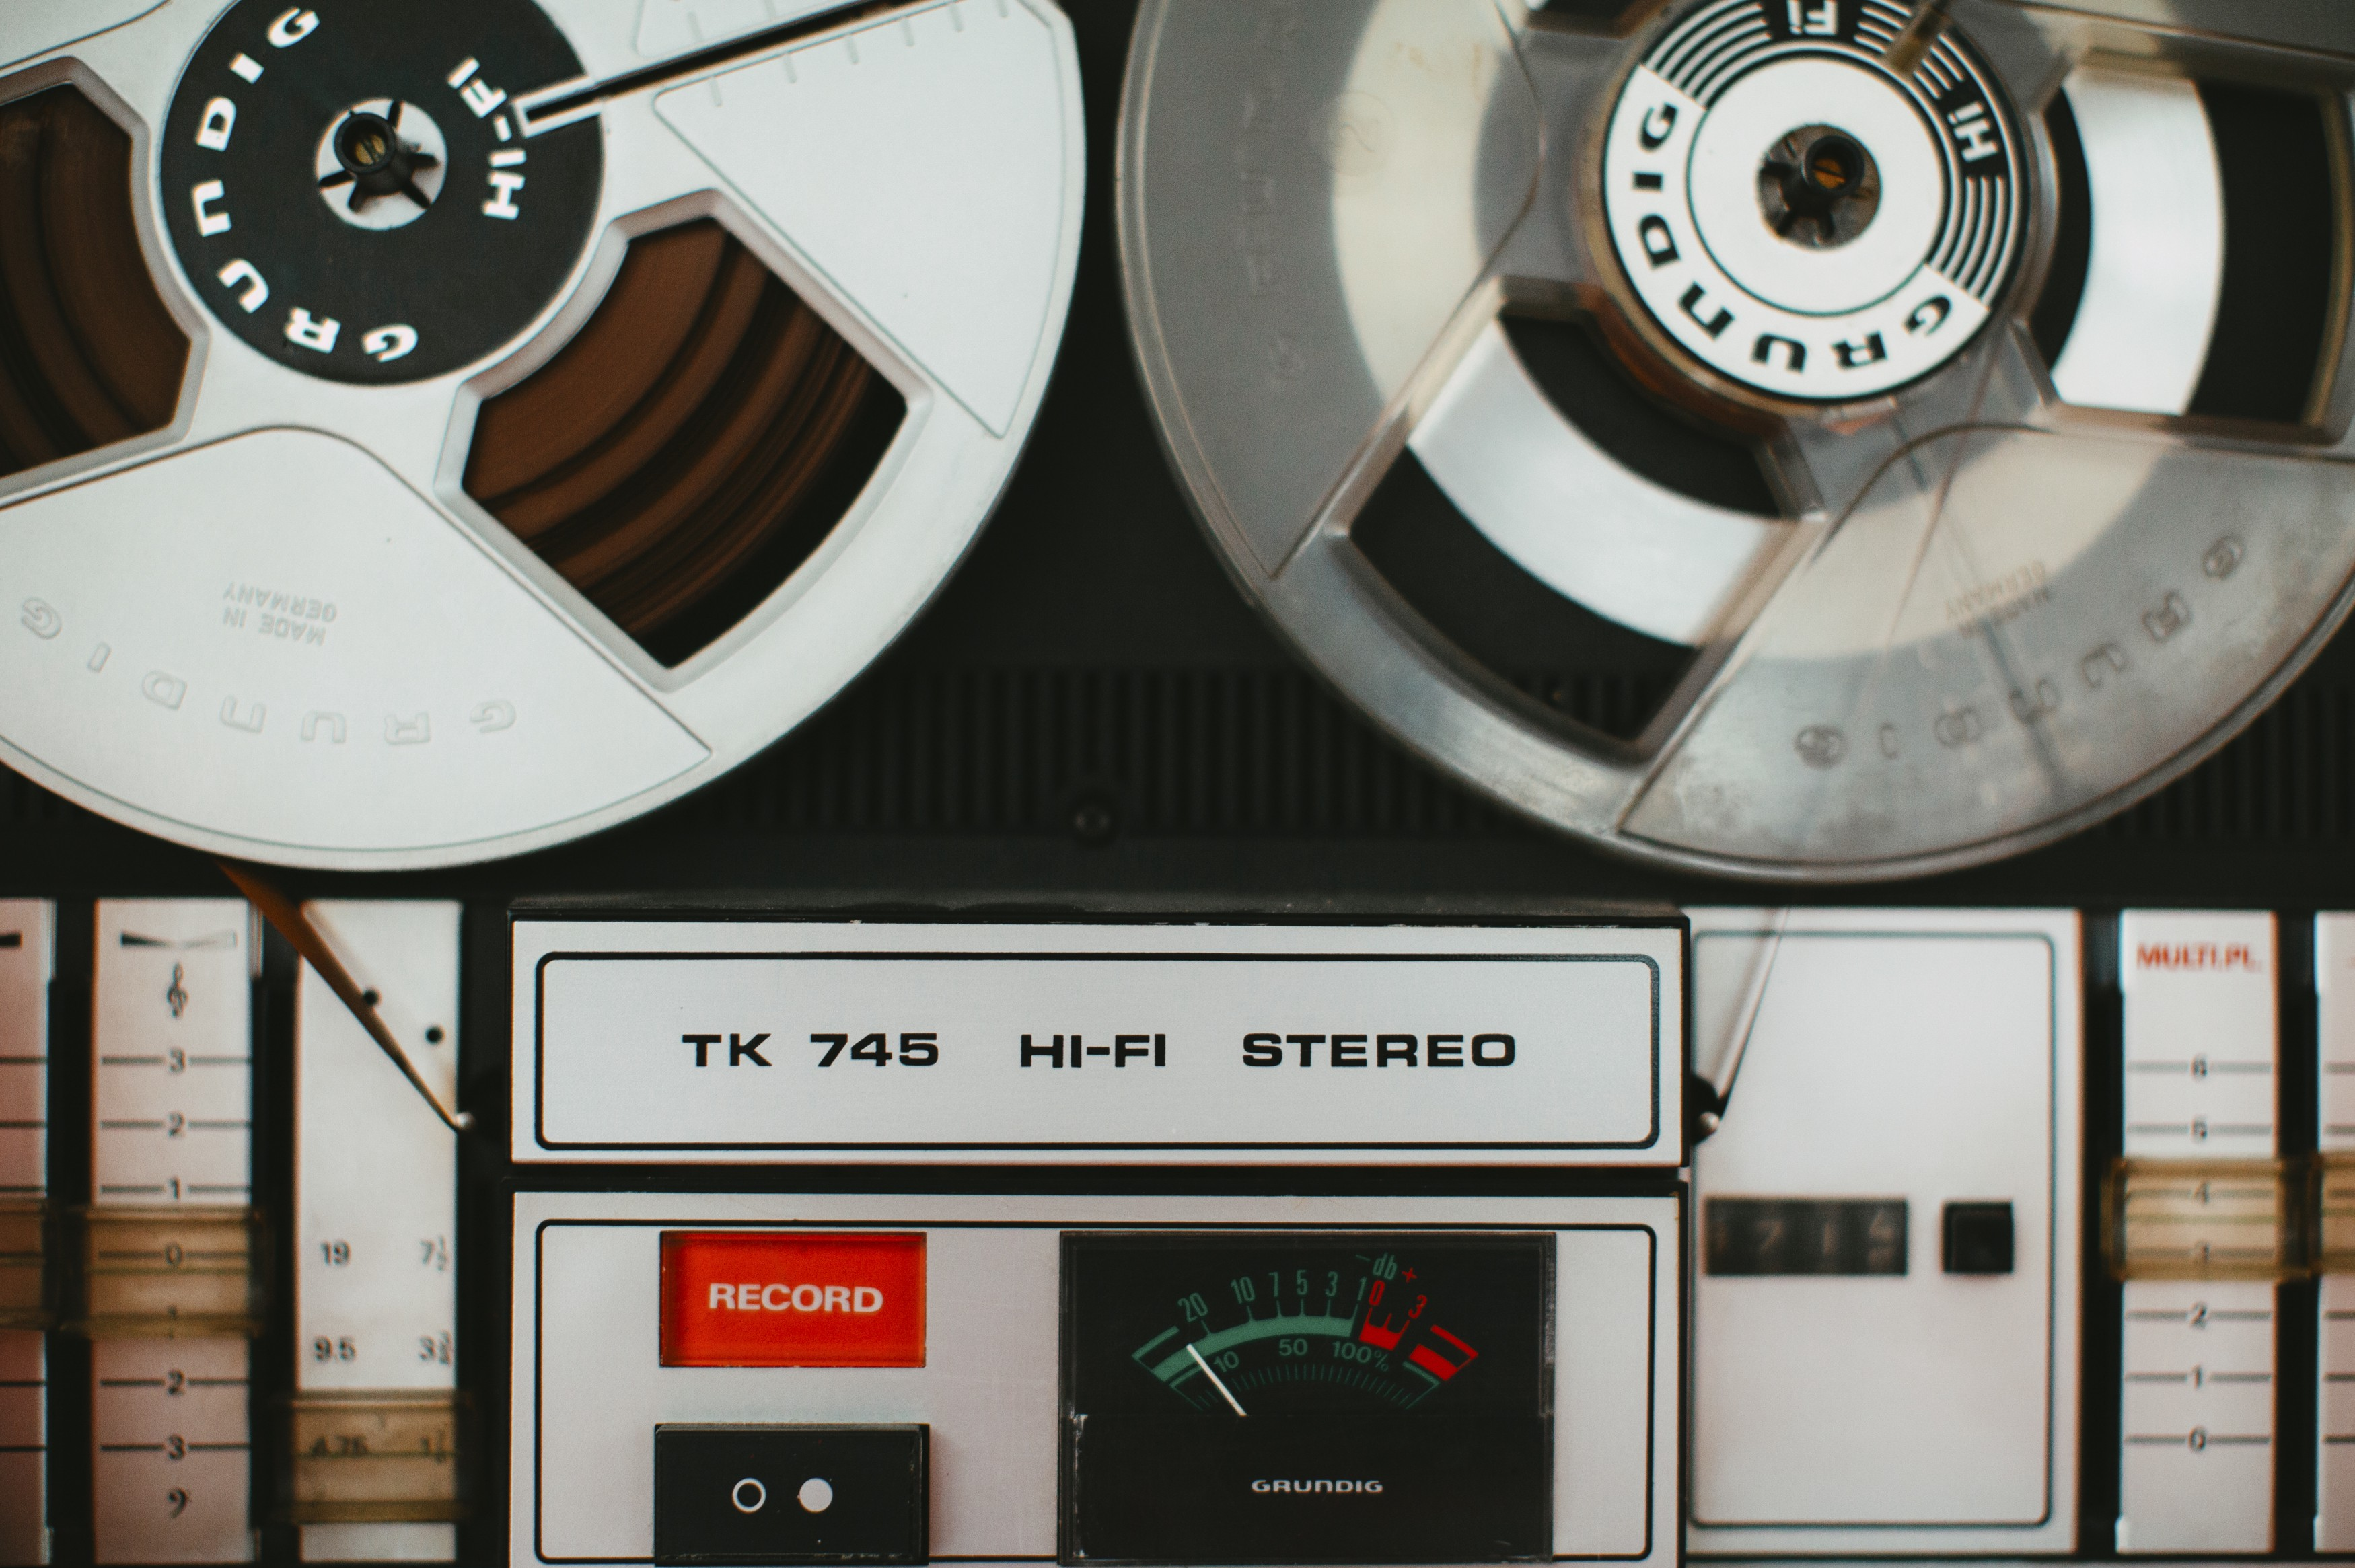 An old-school tape recorder shown top-down